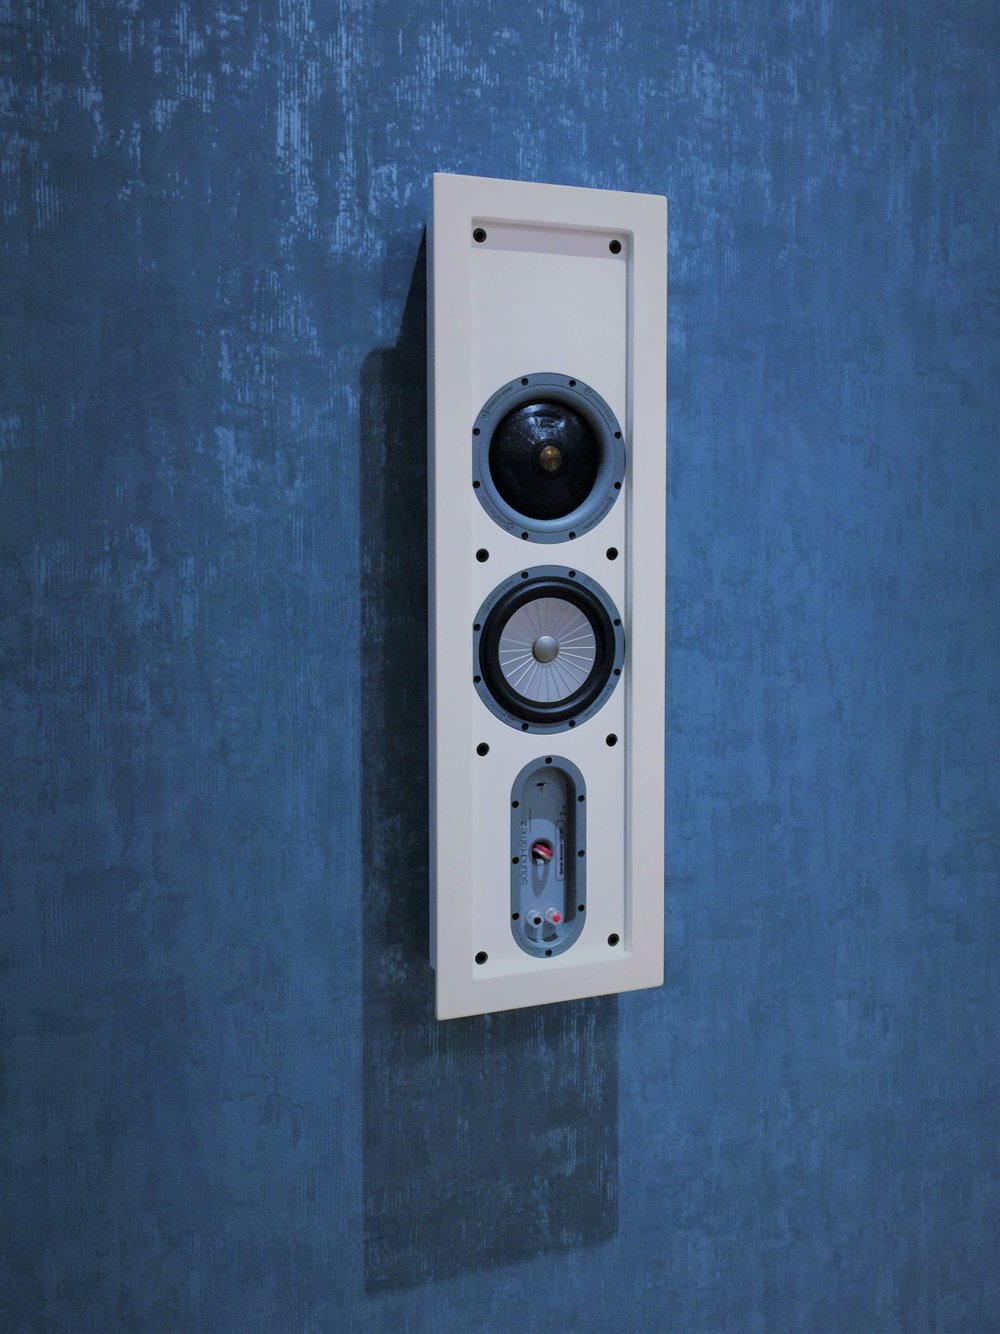 """More than just a work of art... The Monitor Audio SoundFrame is the perfect fit for any room where hi-fi sound quality must blend seamlessly into the room design. It incorporates 3 way full-range sound featuring a 4"""" mid-range/1"""" tweeter module and a 6.5"""" bass driver"""